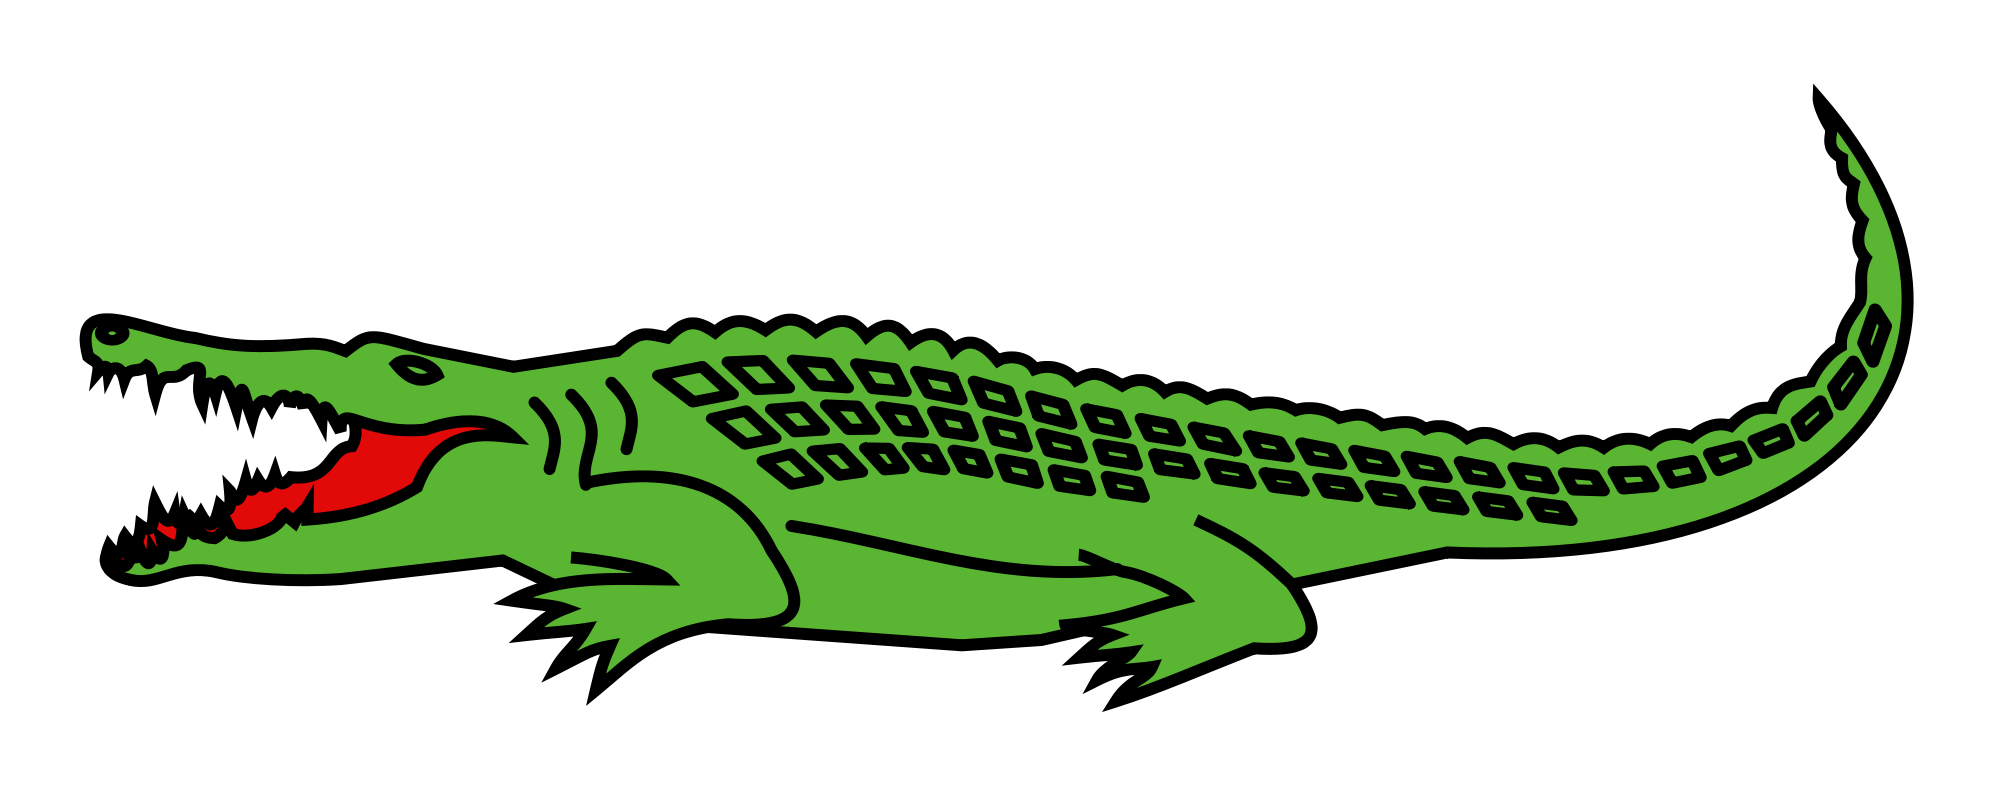 Alligator svg #4, Download drawings